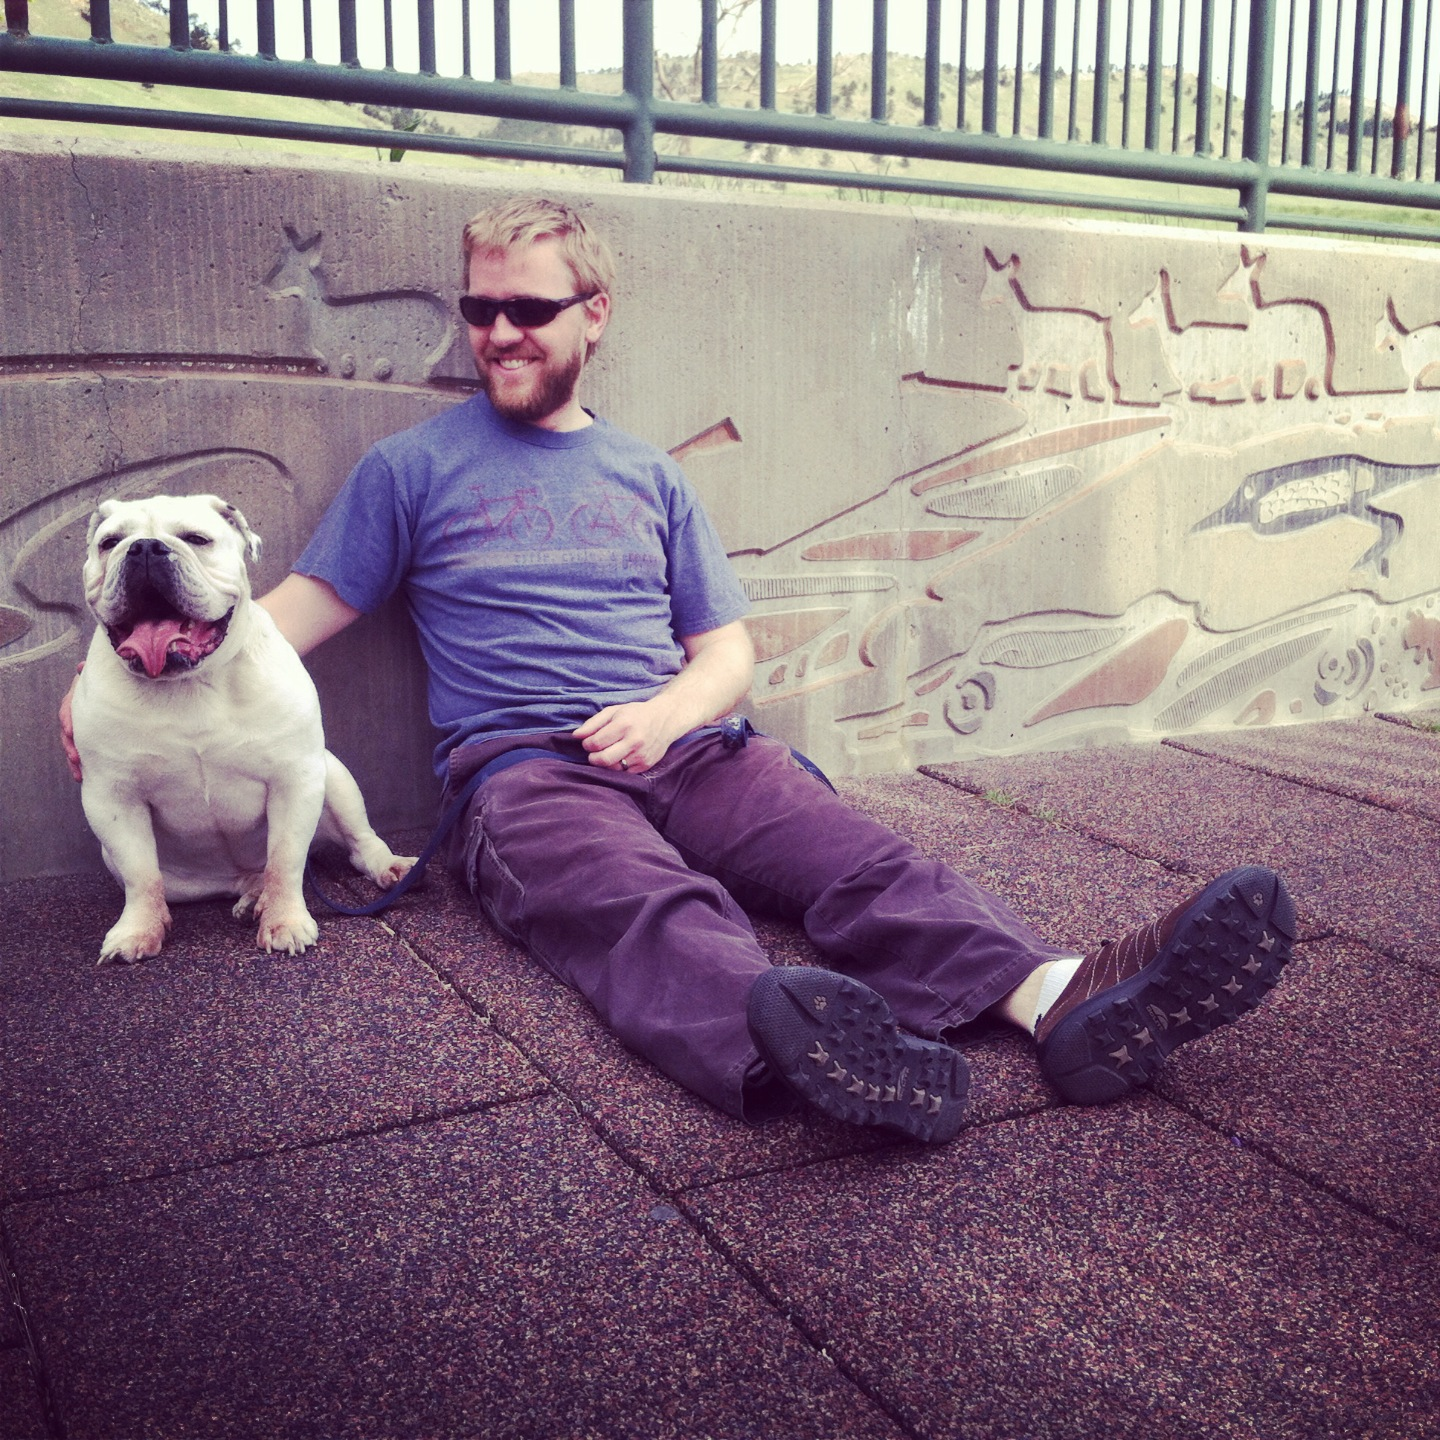 Hot bulldogs always look like happy bulldogs. Engineer Dan is truly happy...but likely hot too.